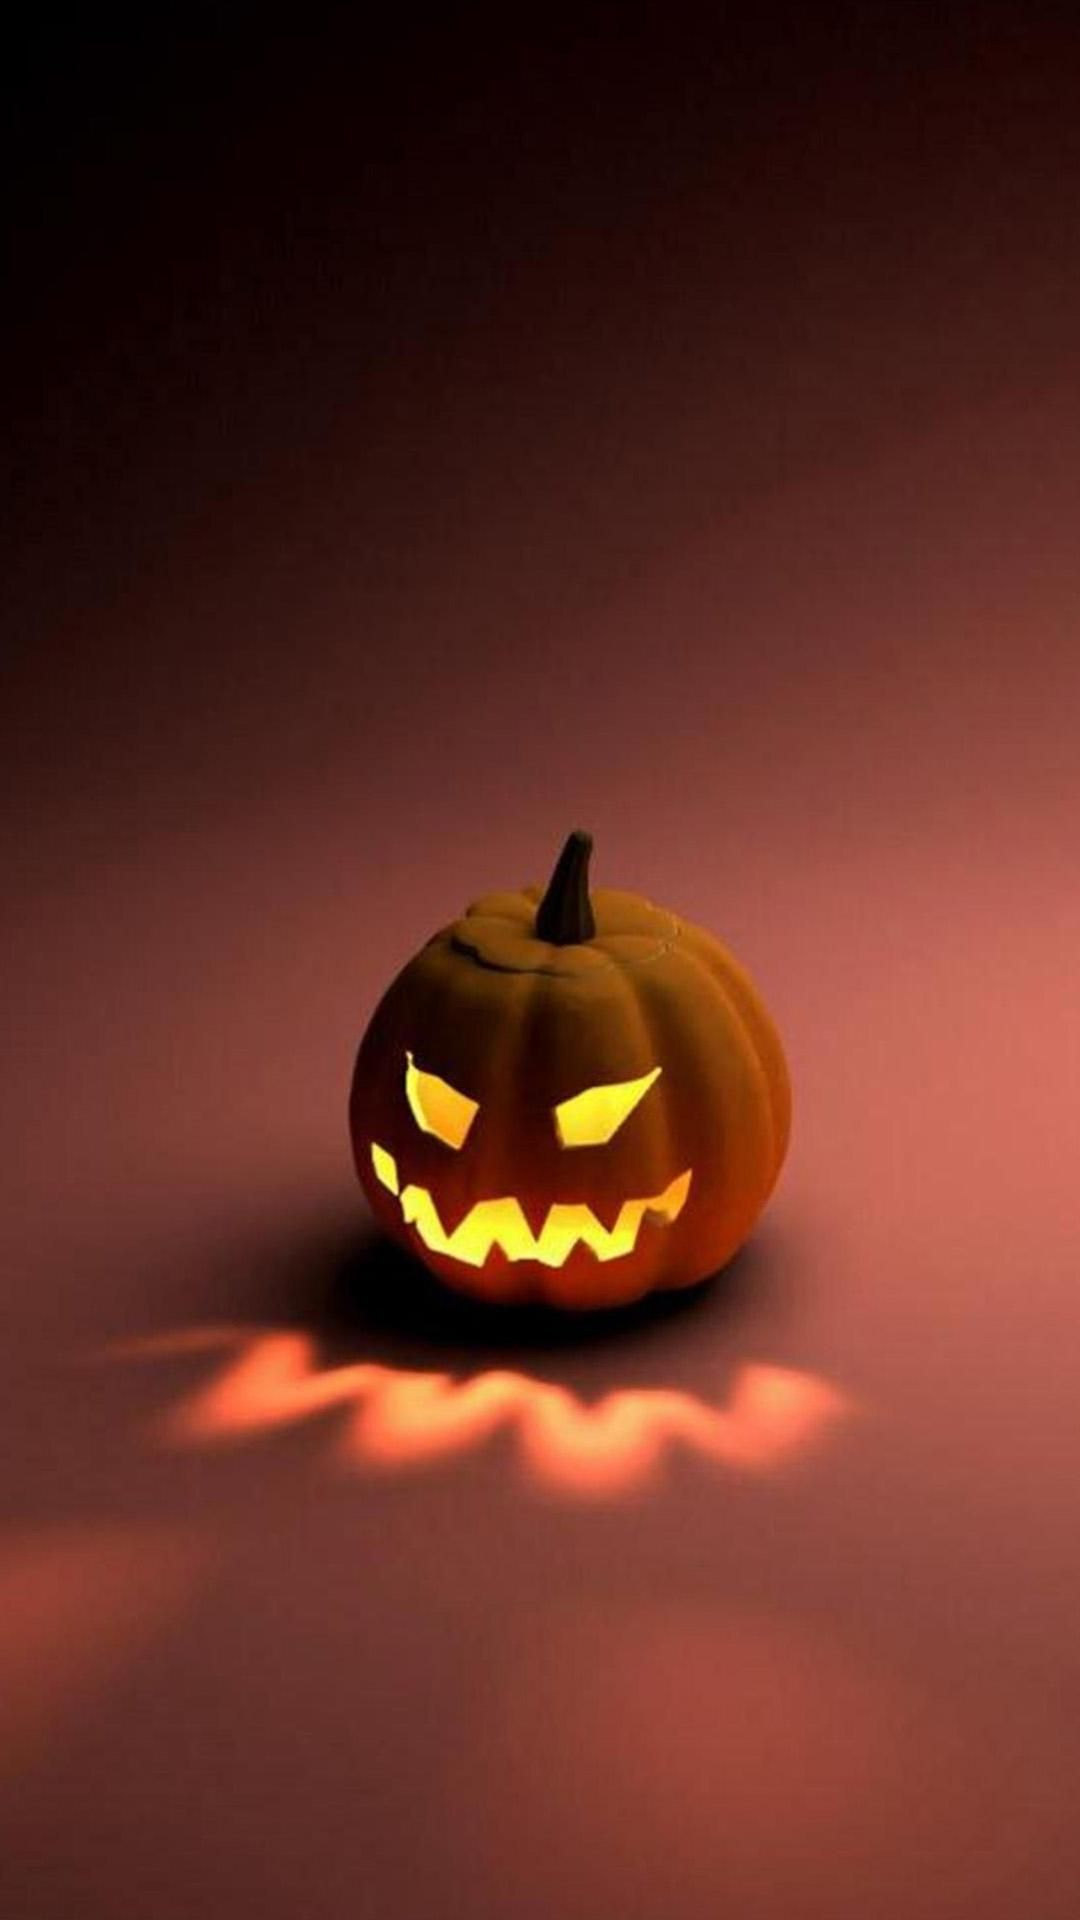 Download Halloween Wallpaper For Iphone 6 Hd Backgrounds